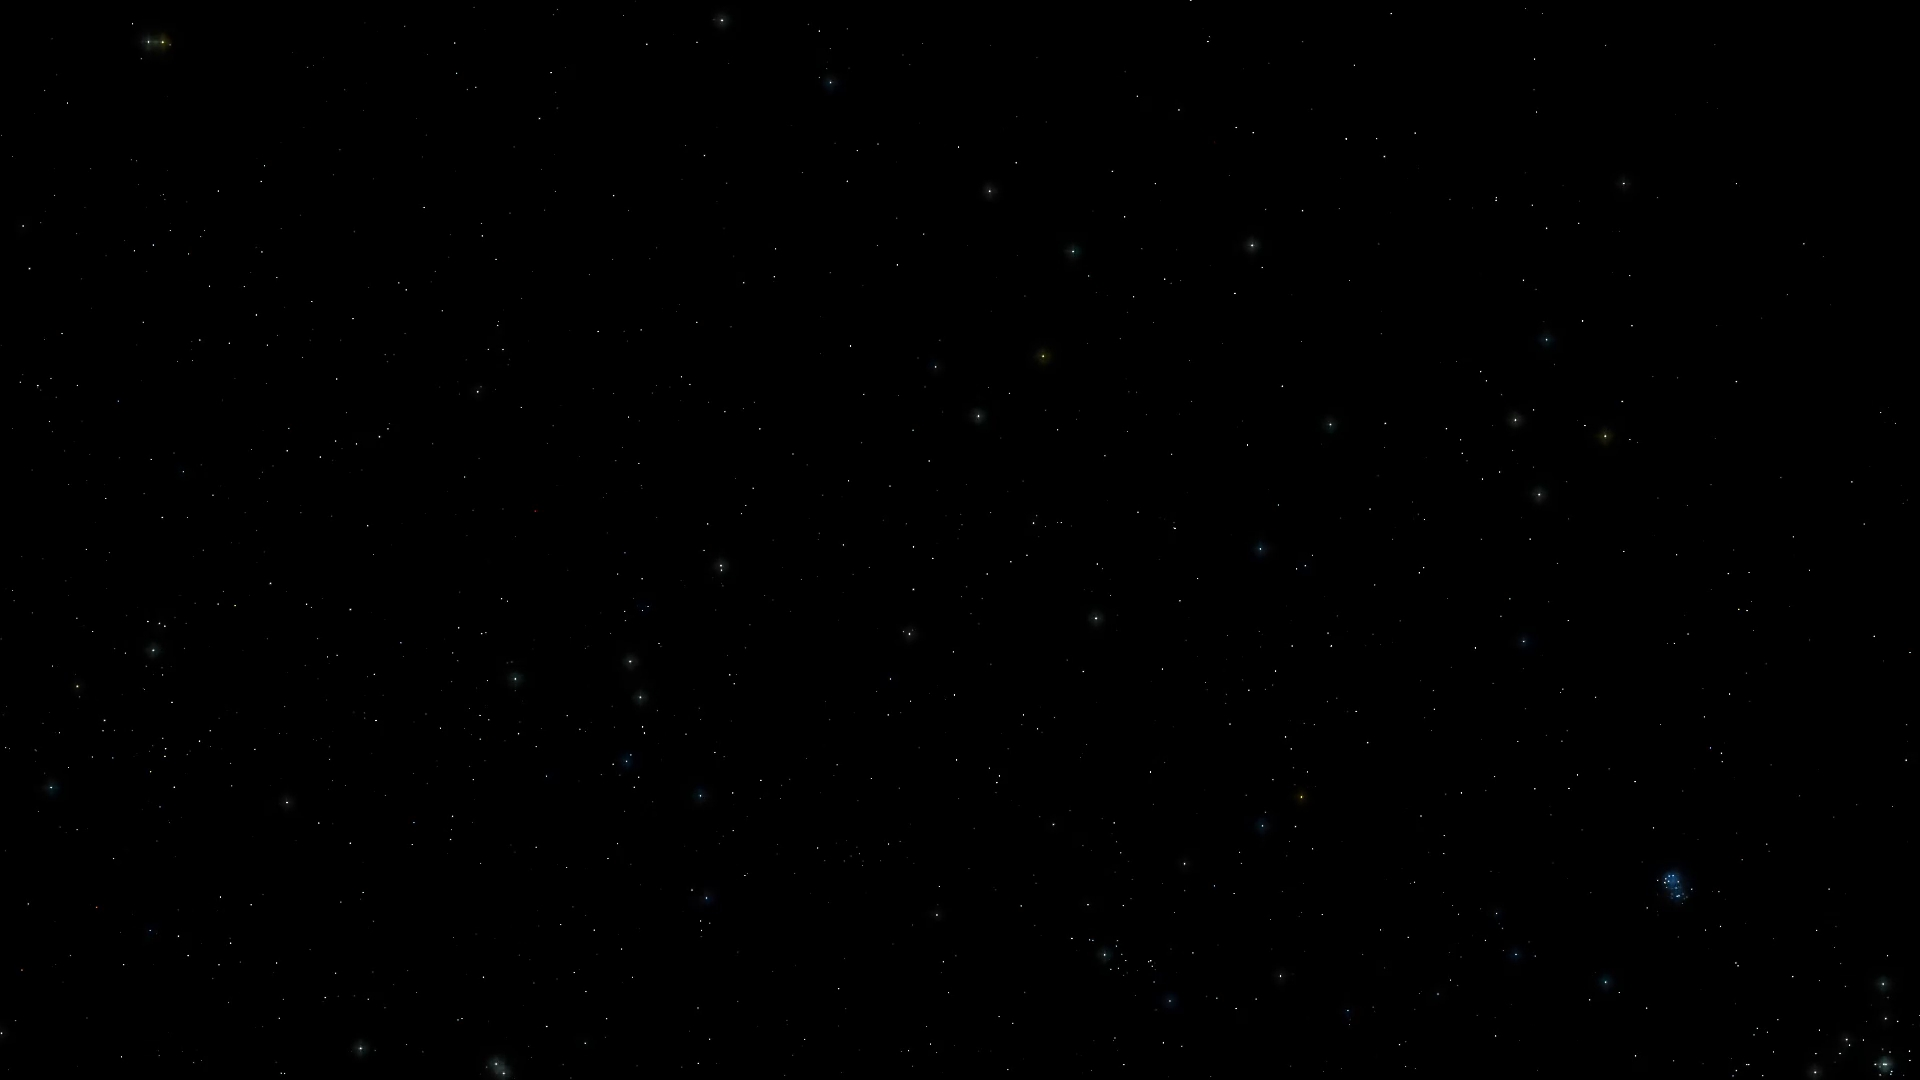 mg0007 night sky with twinkling stars animated background motion